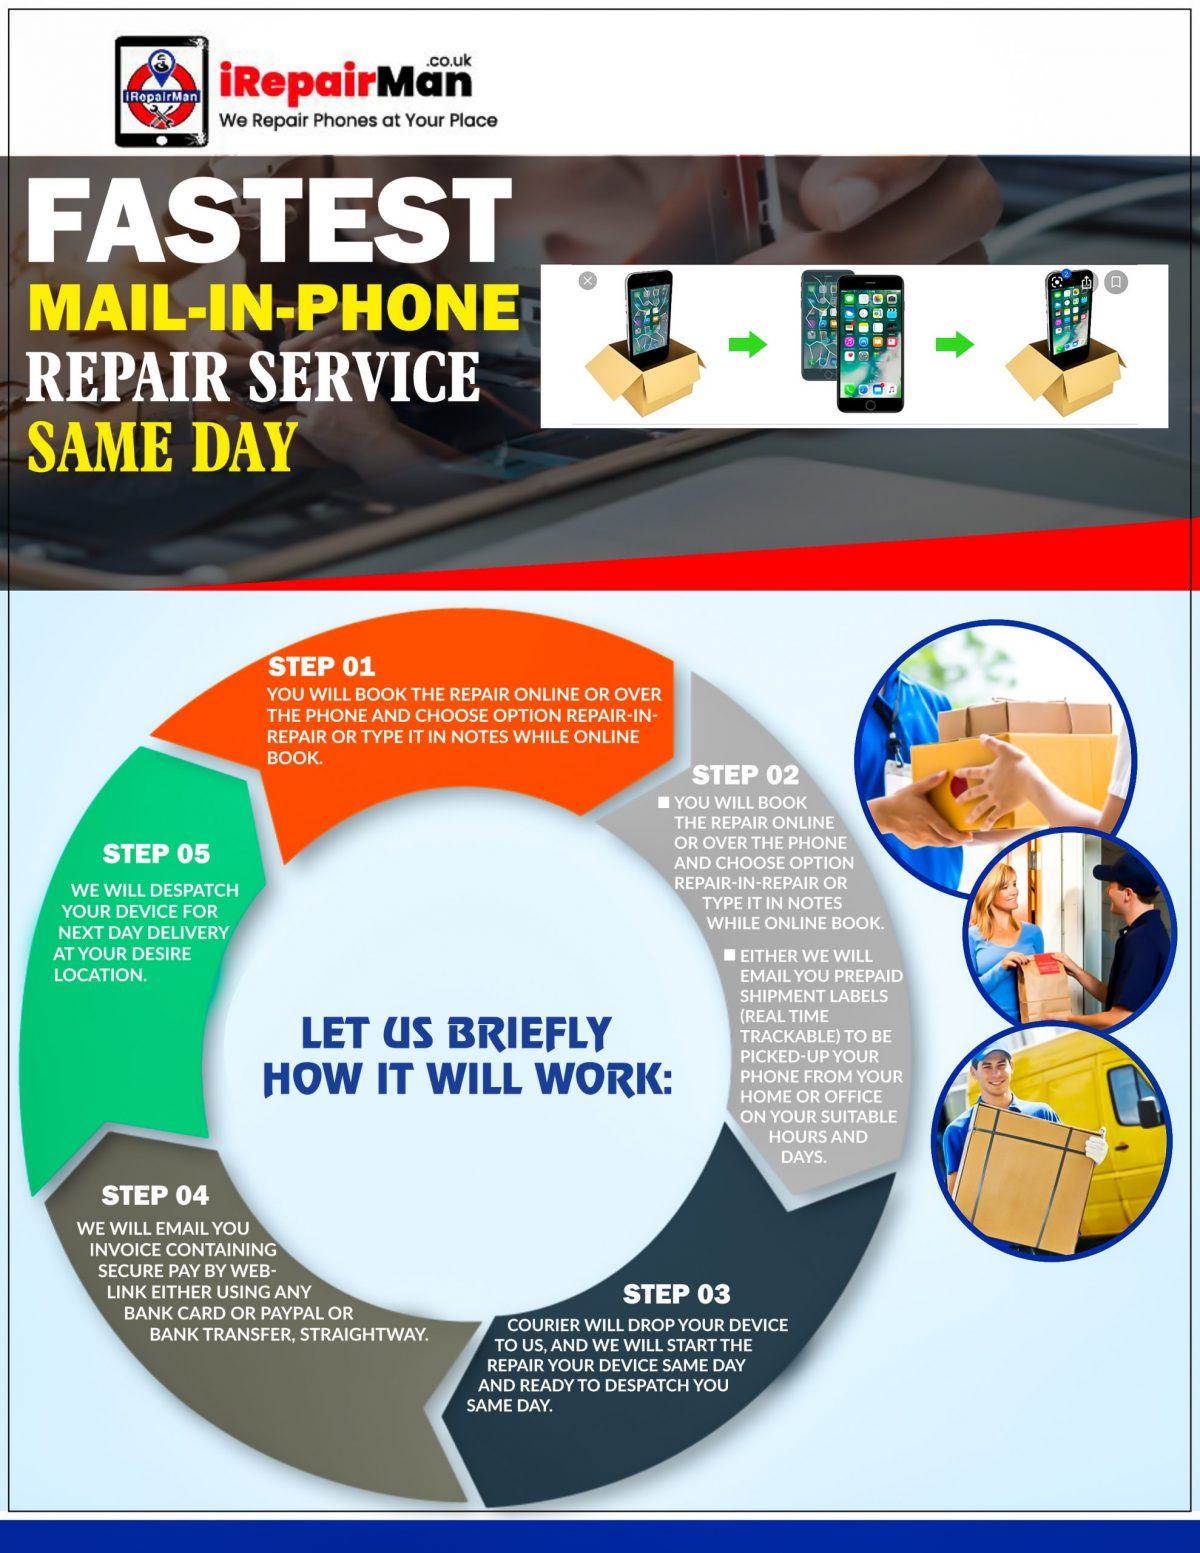 Fastest Mail-in-phone-repair service in London